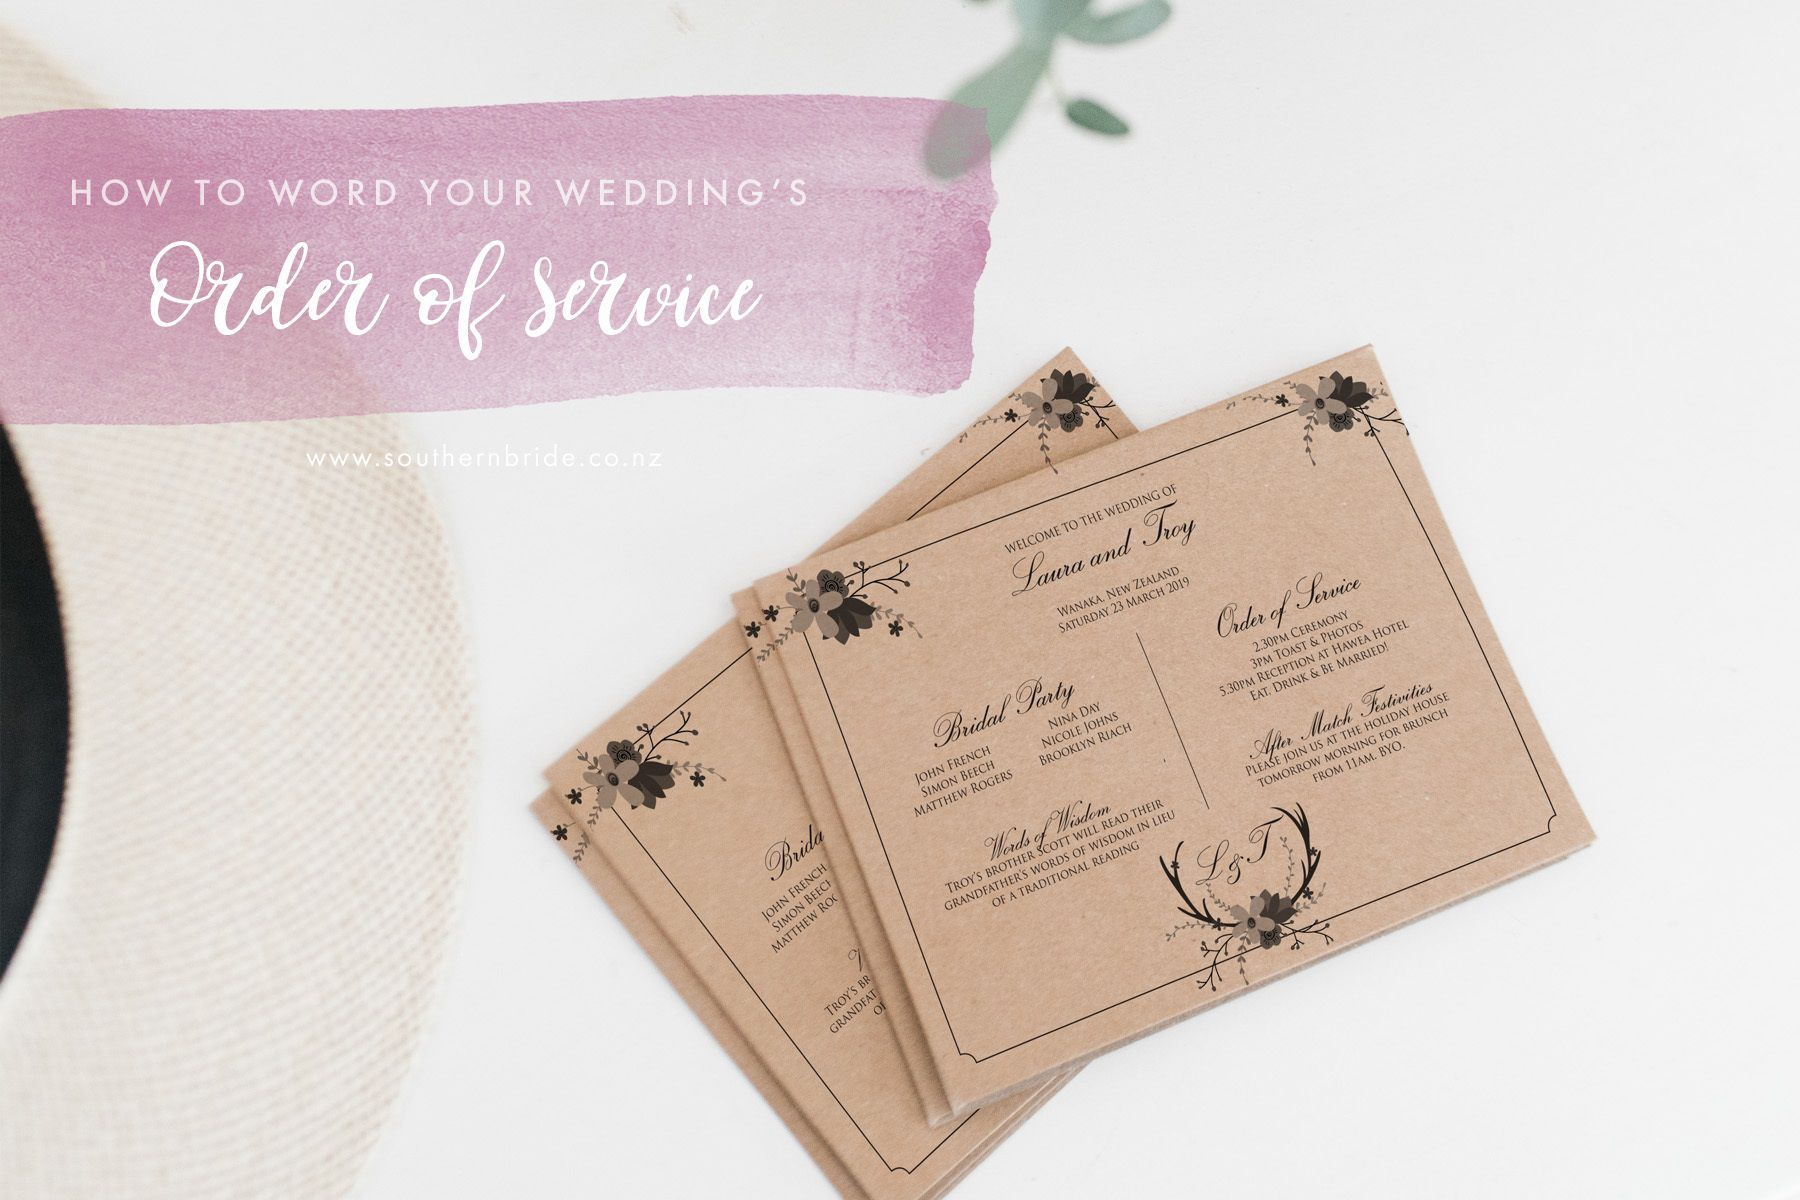 005 Fearsome Wedding Order Of Service Template Word High Definition  Free MicrosoftFull